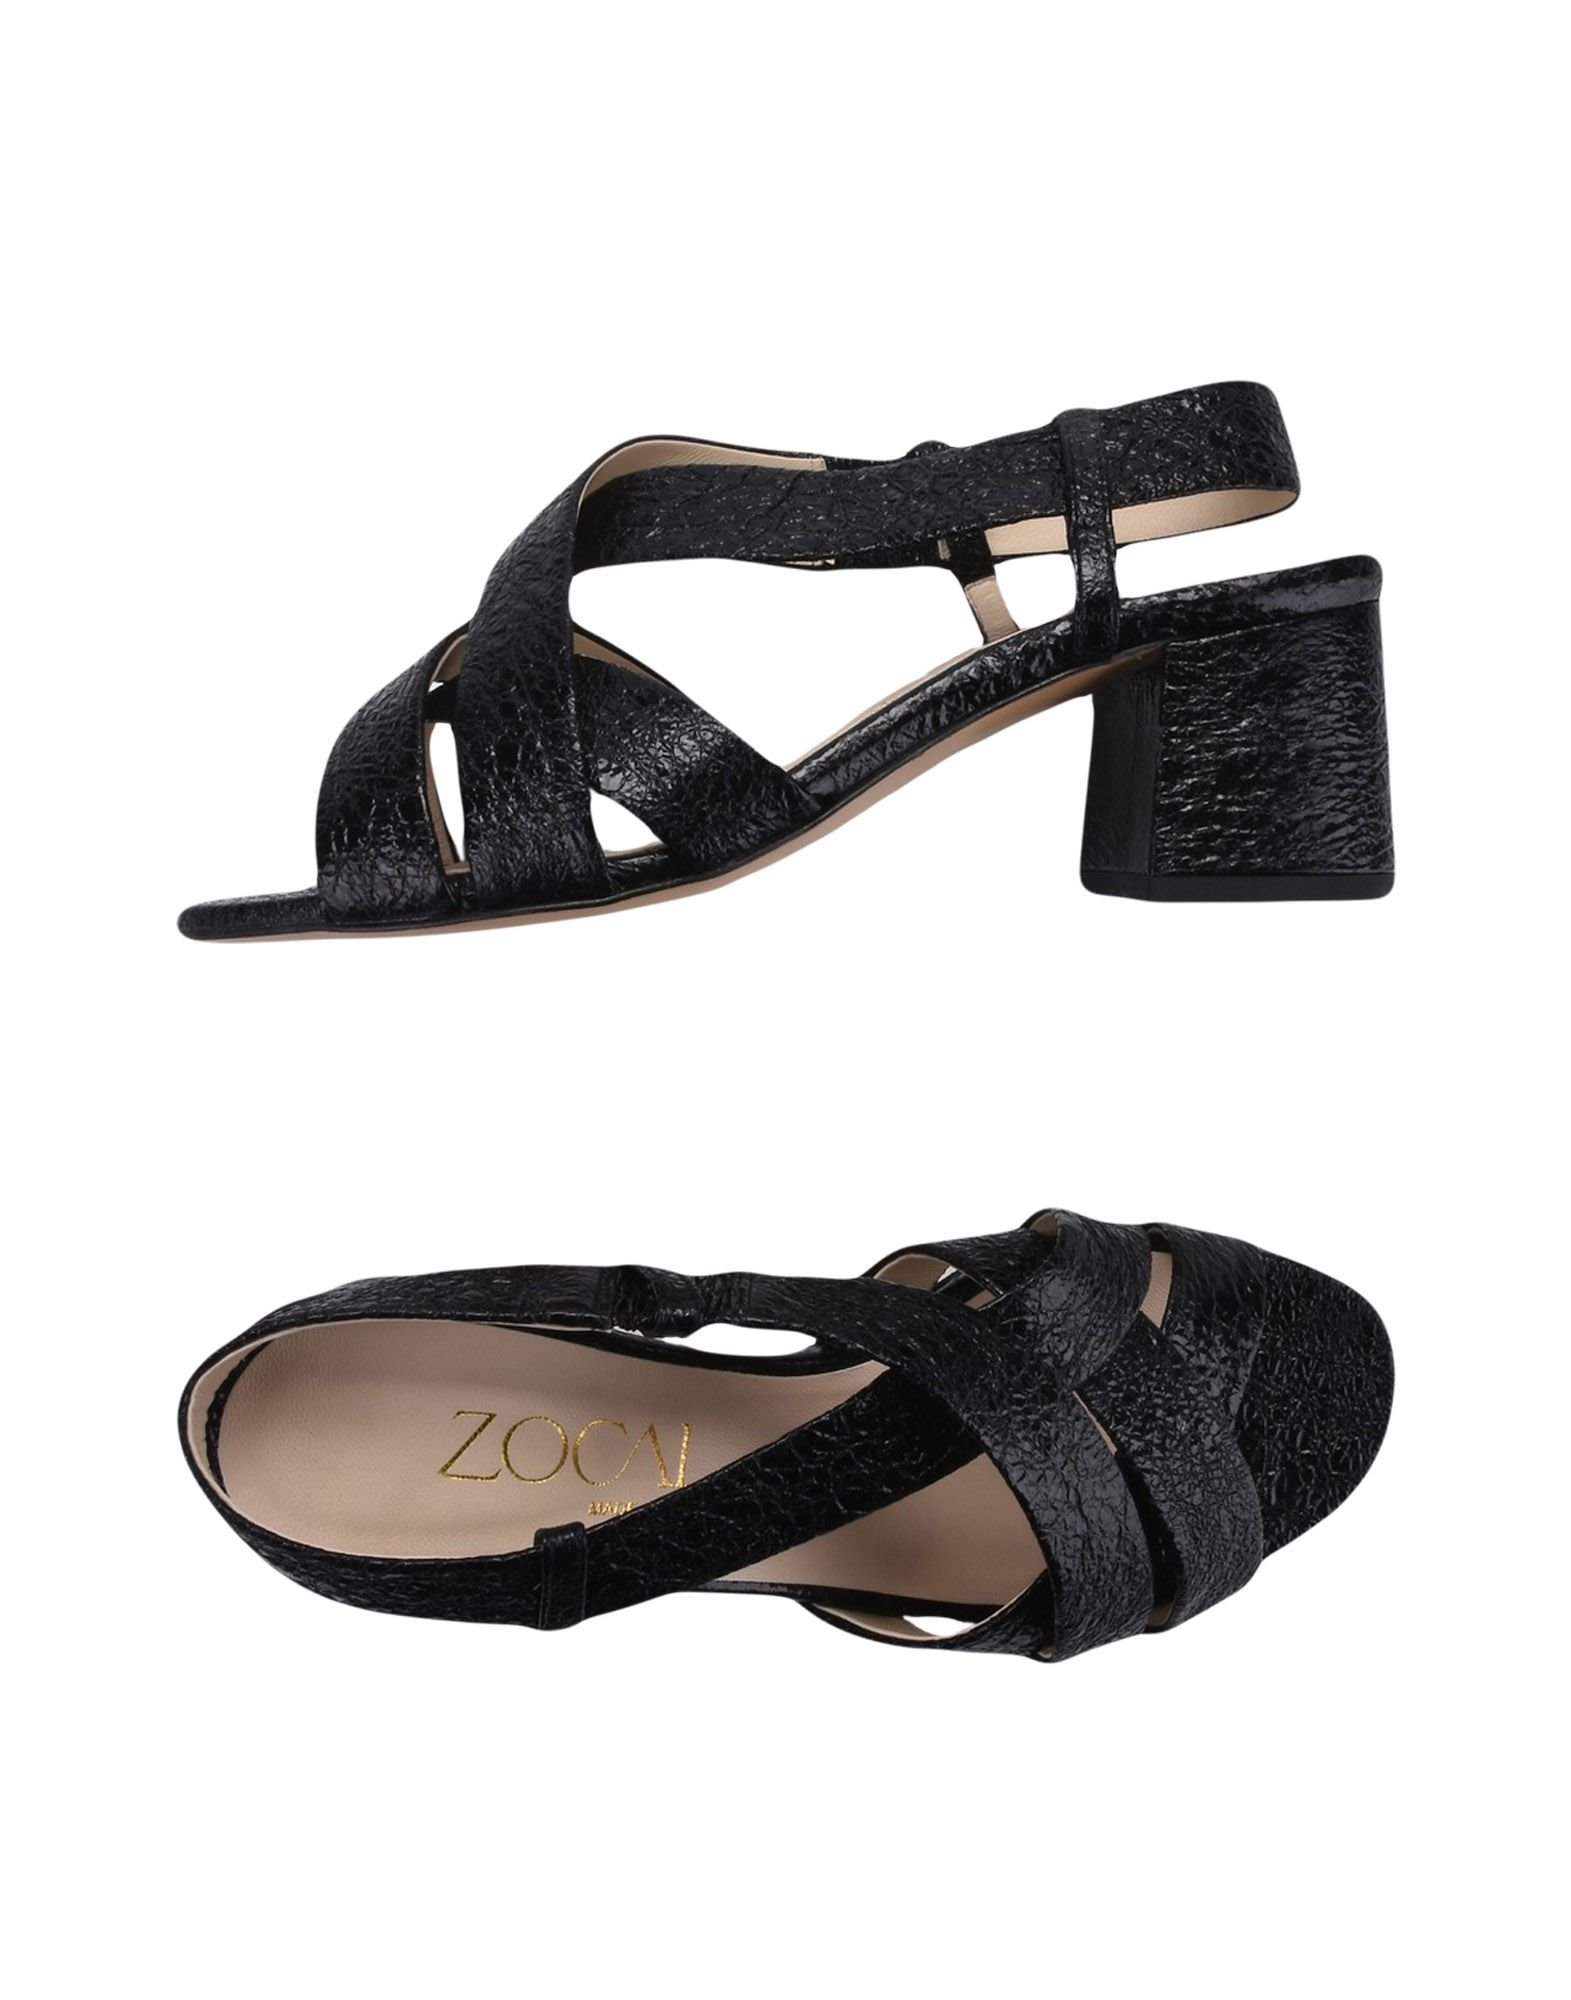 CHAUSSURES - SandalesZocal aB715Kc